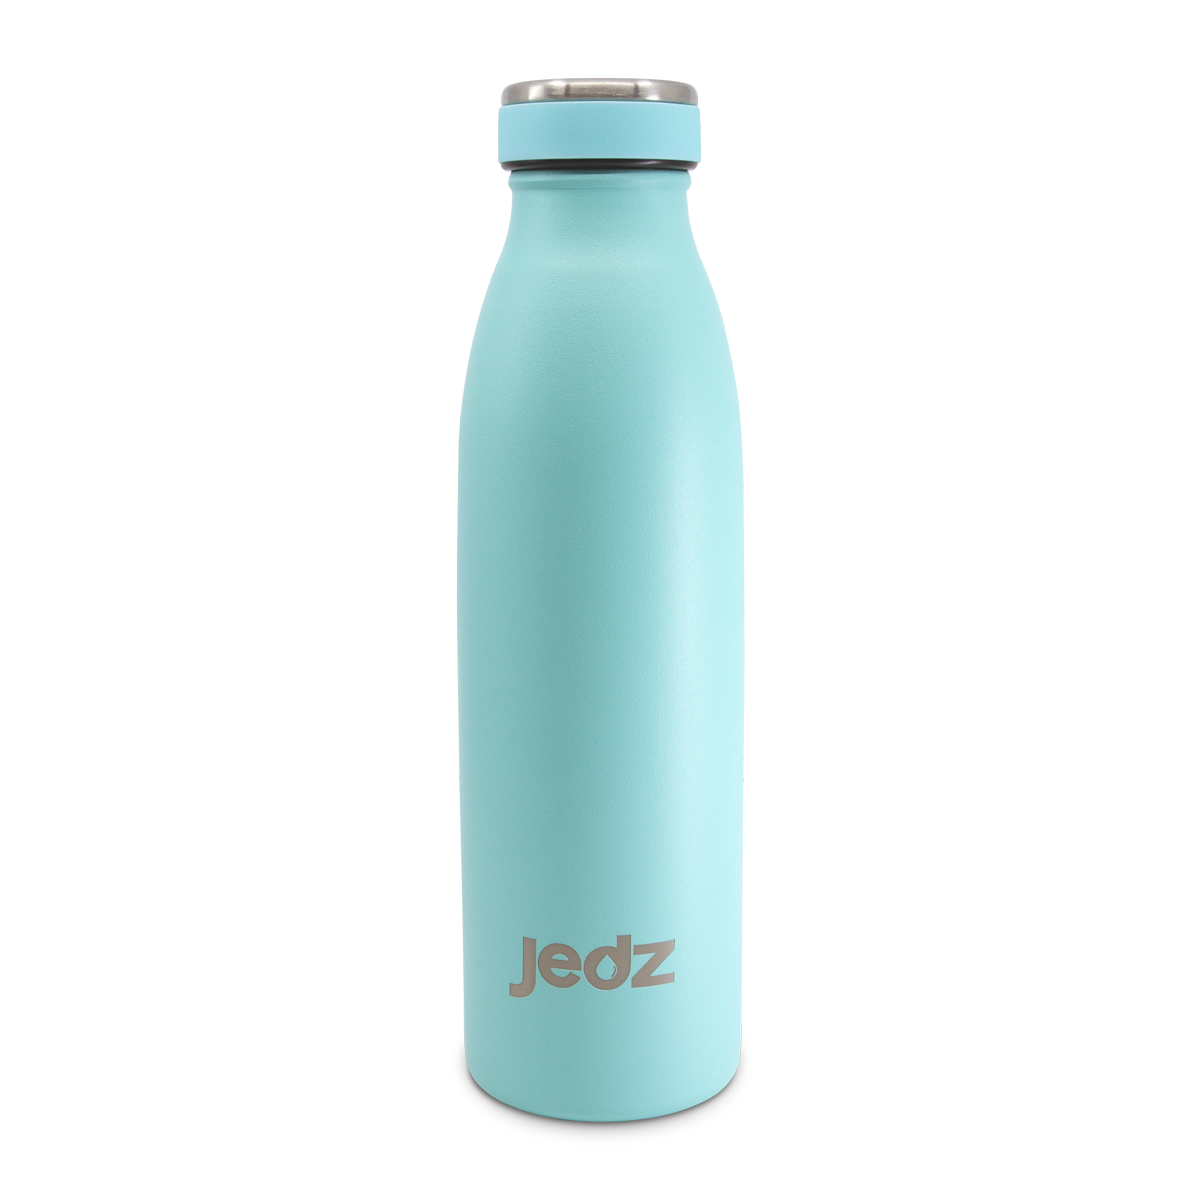 Image result for jedz bottle image